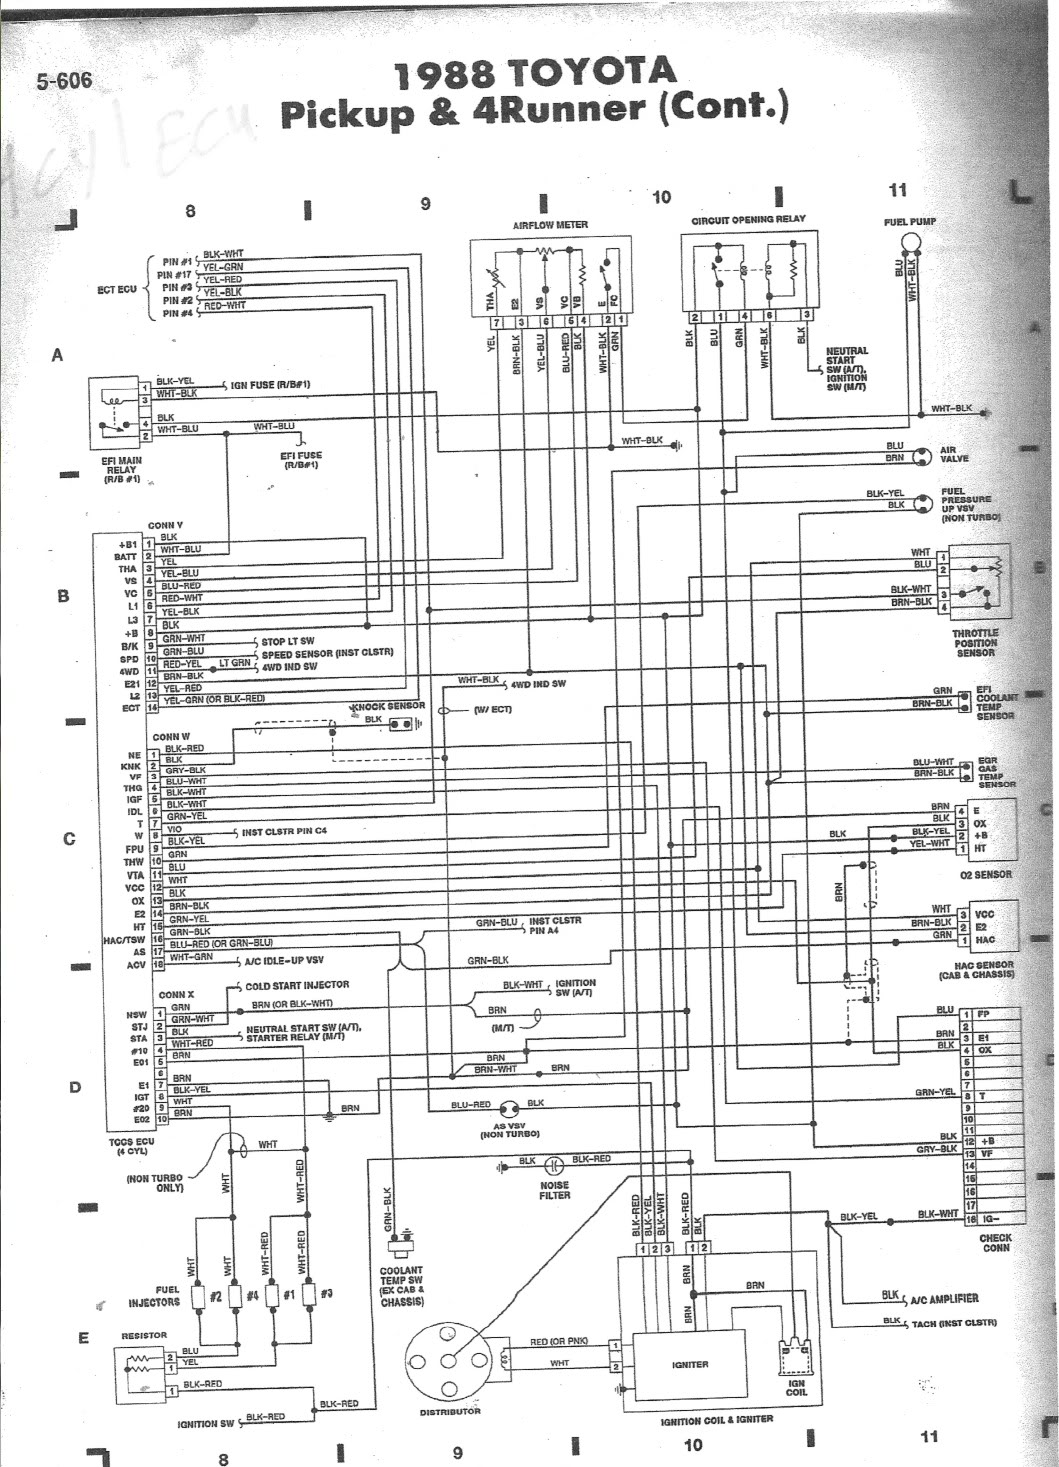 192234d1501885158 88 4x4 no really where diagnostic connector 88wd6 1988 toyota pickup wiring diagram 1988 wiring diagrams collection  at mifinder.co